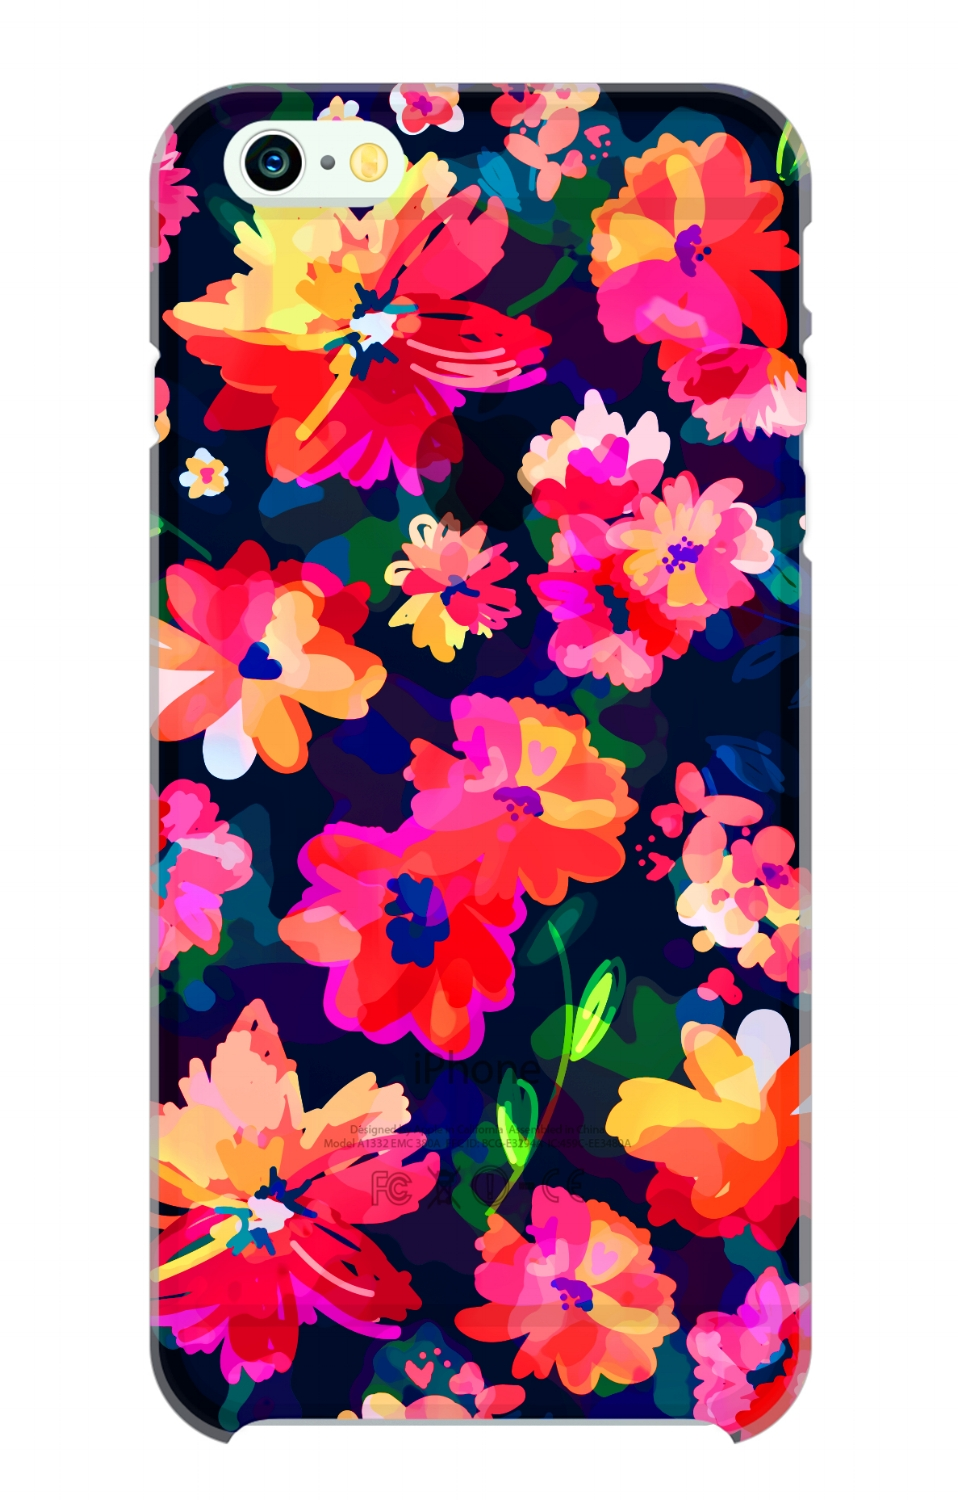 Phone Cases - We can customize your designs on any phone case from iPhone to Android to tablets.